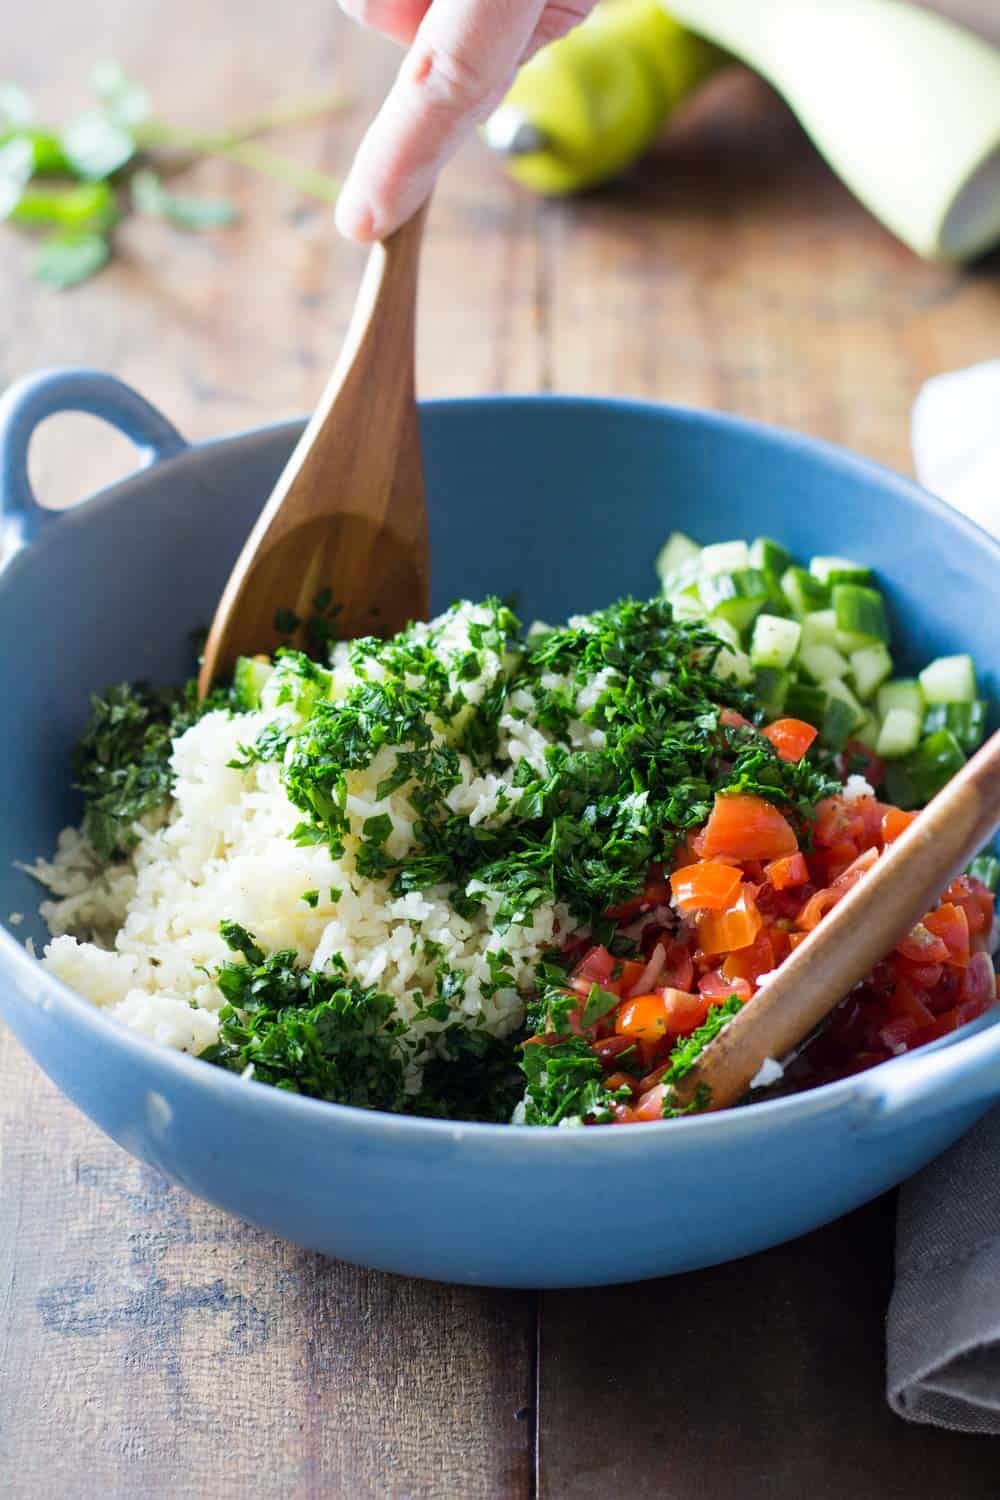 A gluten-free version of my beloved Lebanese tabbouleh: Cauliflower Couscous. An extraordinary way to add in more veggies into your diet and spice them up in a delicious way.